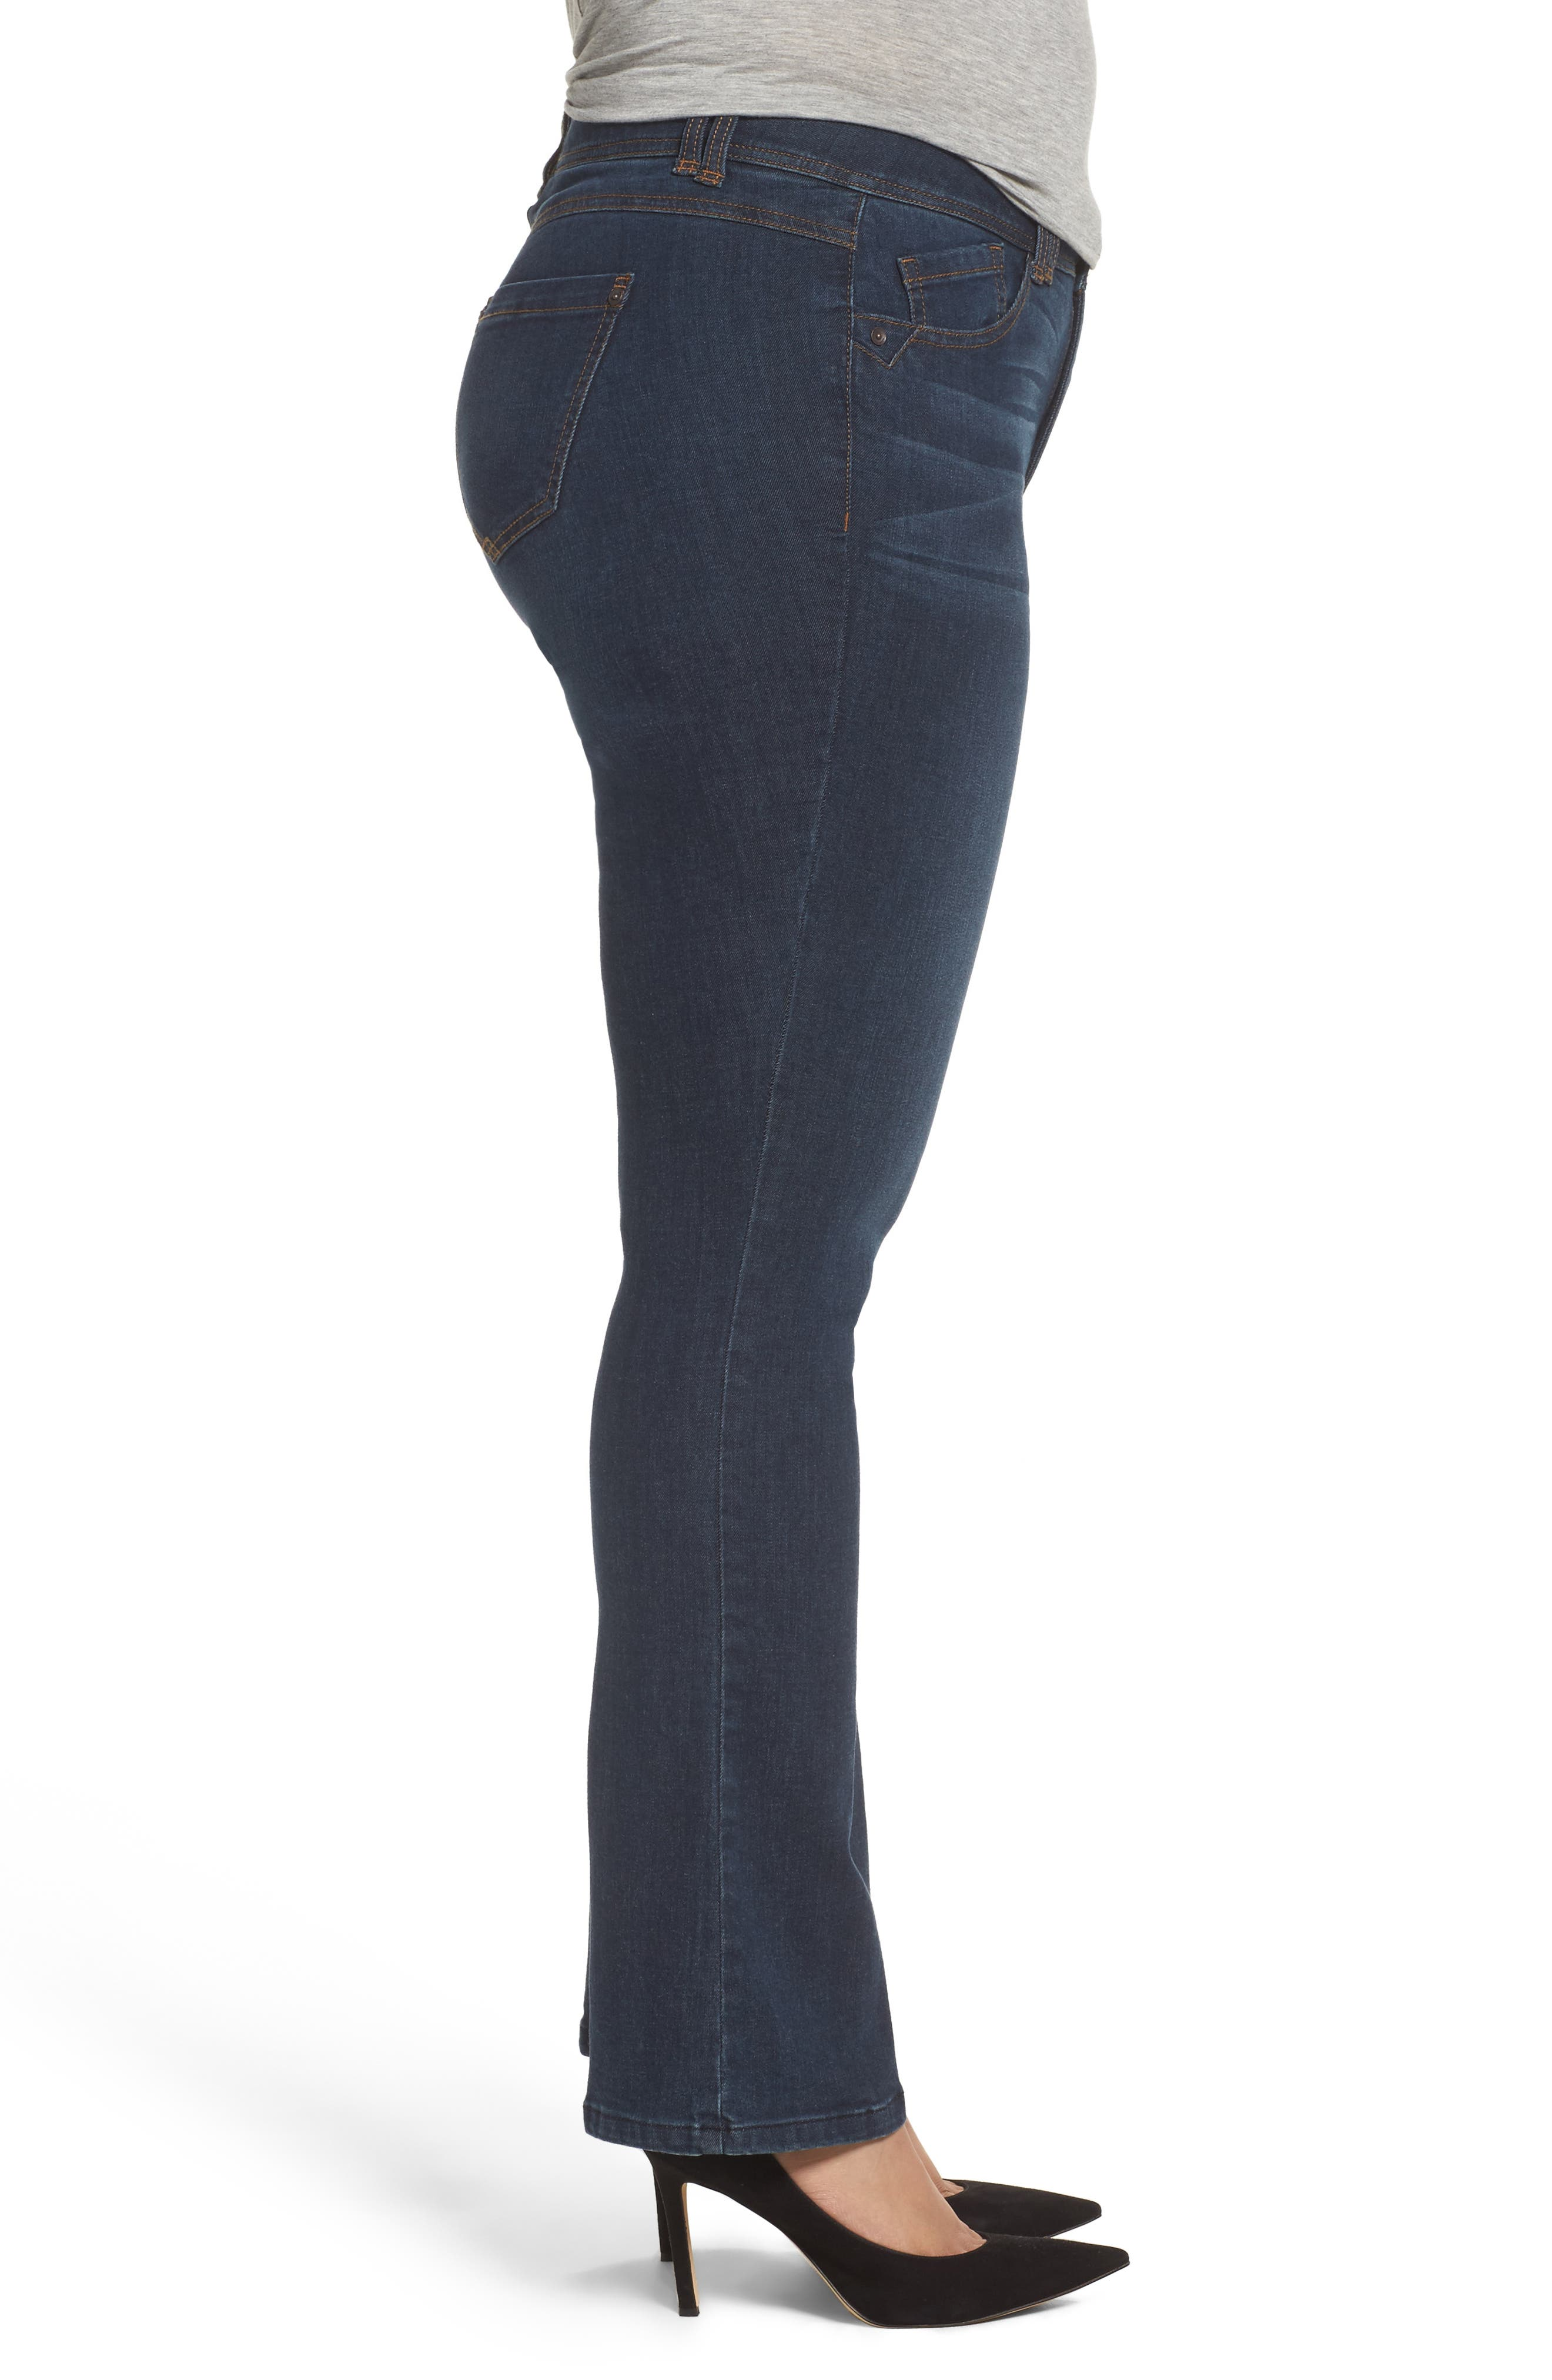 Alternate Image 3  - Wit & Wisdom Ab-solution Itty Bitty Bootcut Jeans (Plus Size) (Nordstrom Exclusive)